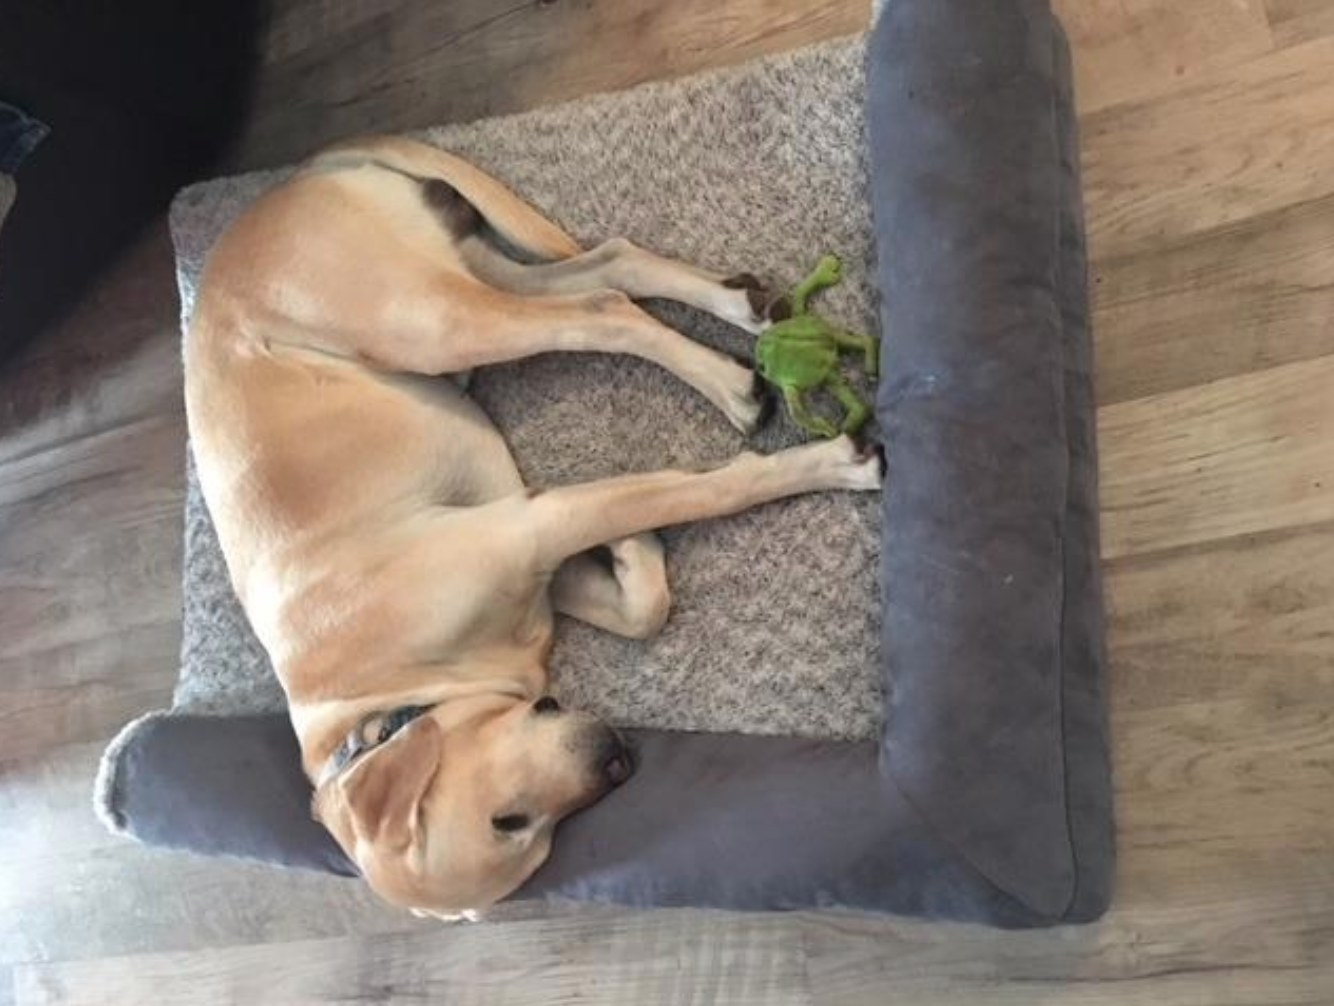 A reviewer's photo of their dog on the orthopedic plush sofa